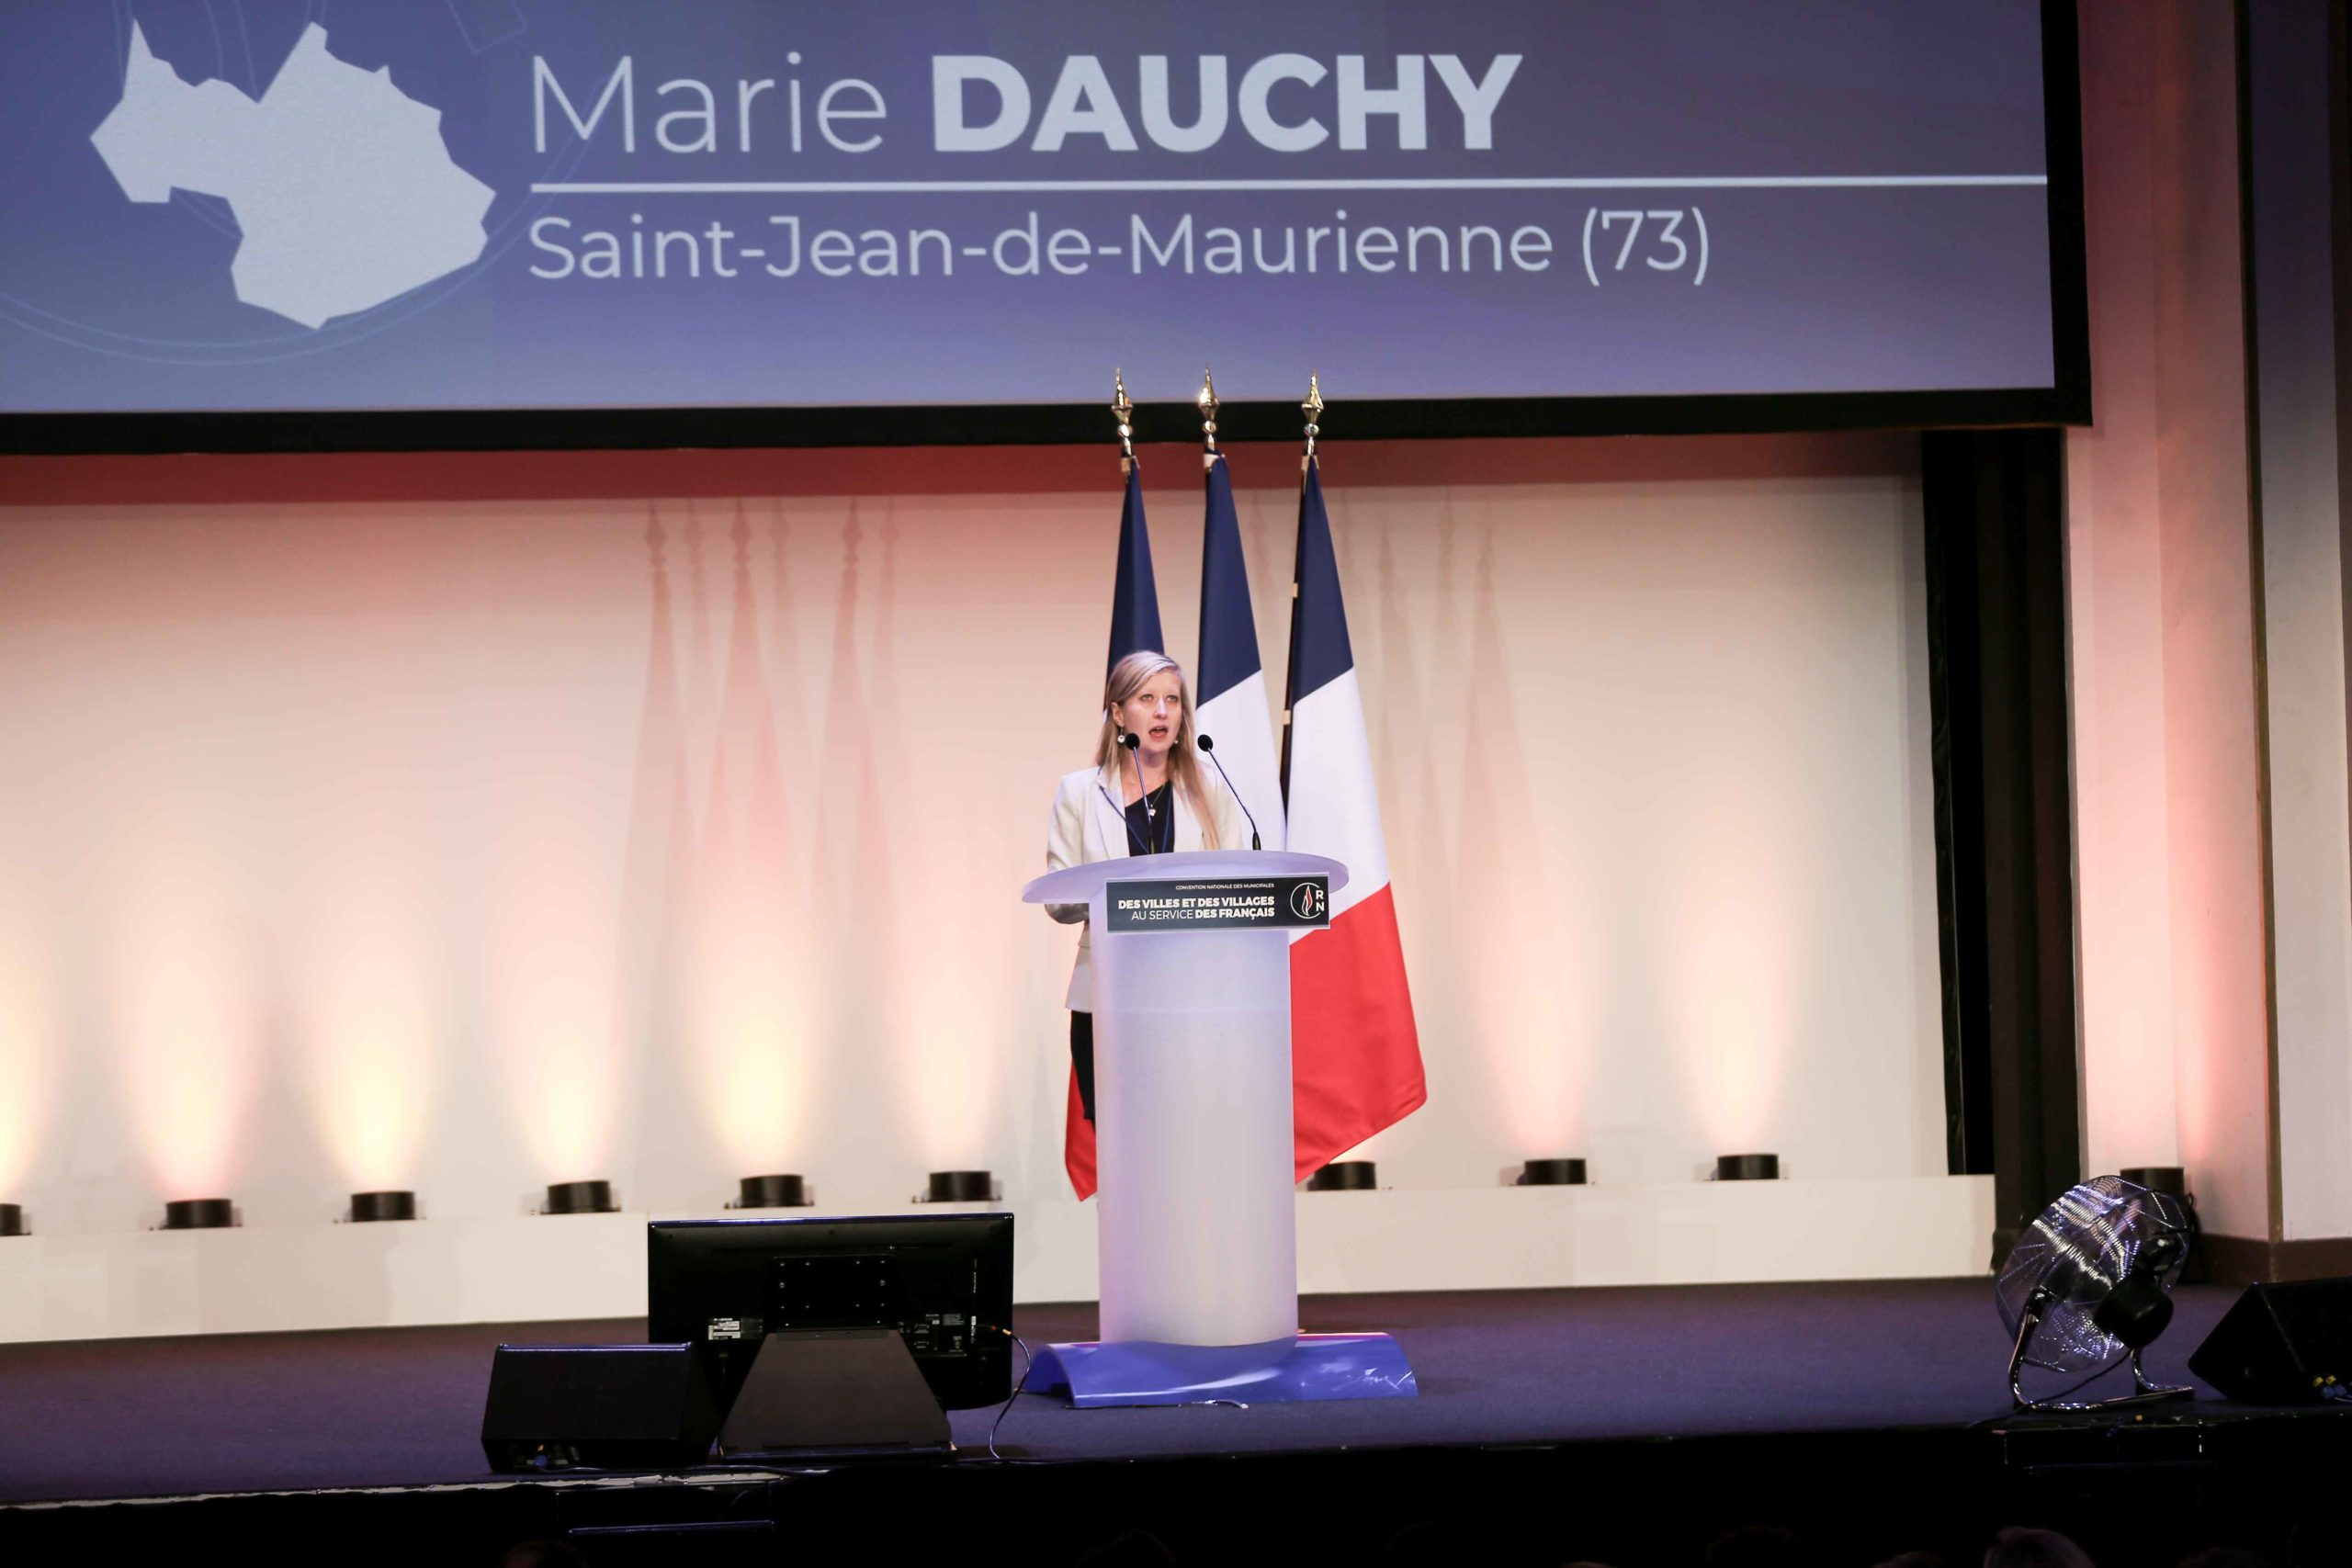 Marie Dauchy, the Rassemblement national (RN) candidate in the forthcoming mayoral election in Saint-Jean-de-Maurienne (Savoie), speaks in Paris, on January 12, 2020, during a meeting to launch the RN campaign candidates for the next municipal elections.